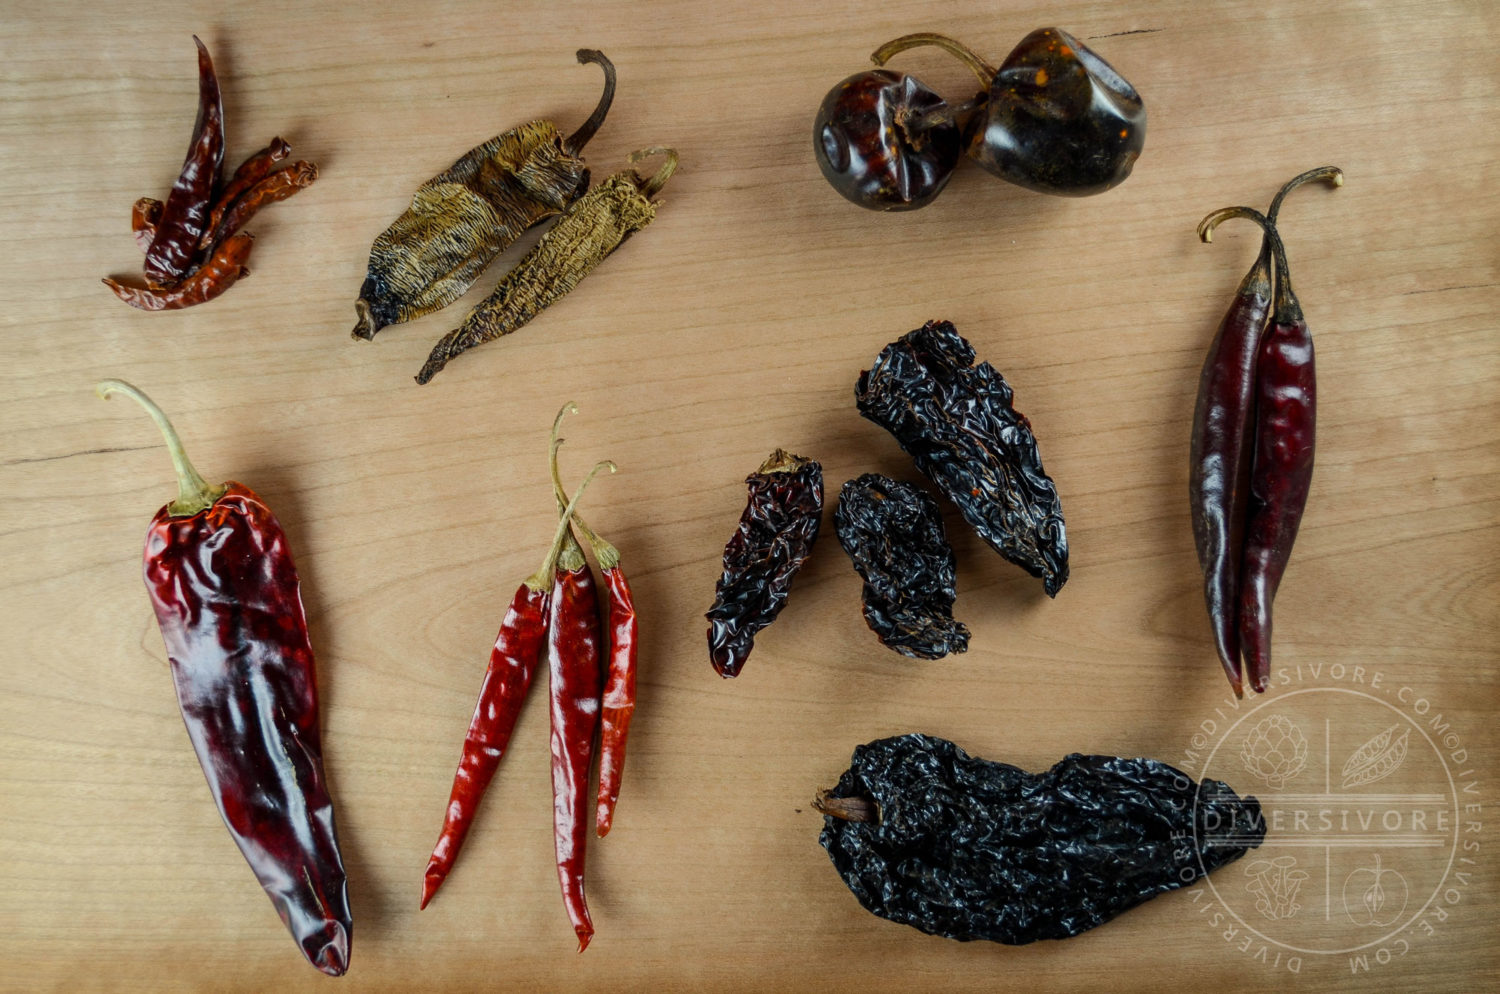 Various Dried Mexican Chilies - Diversivore.com